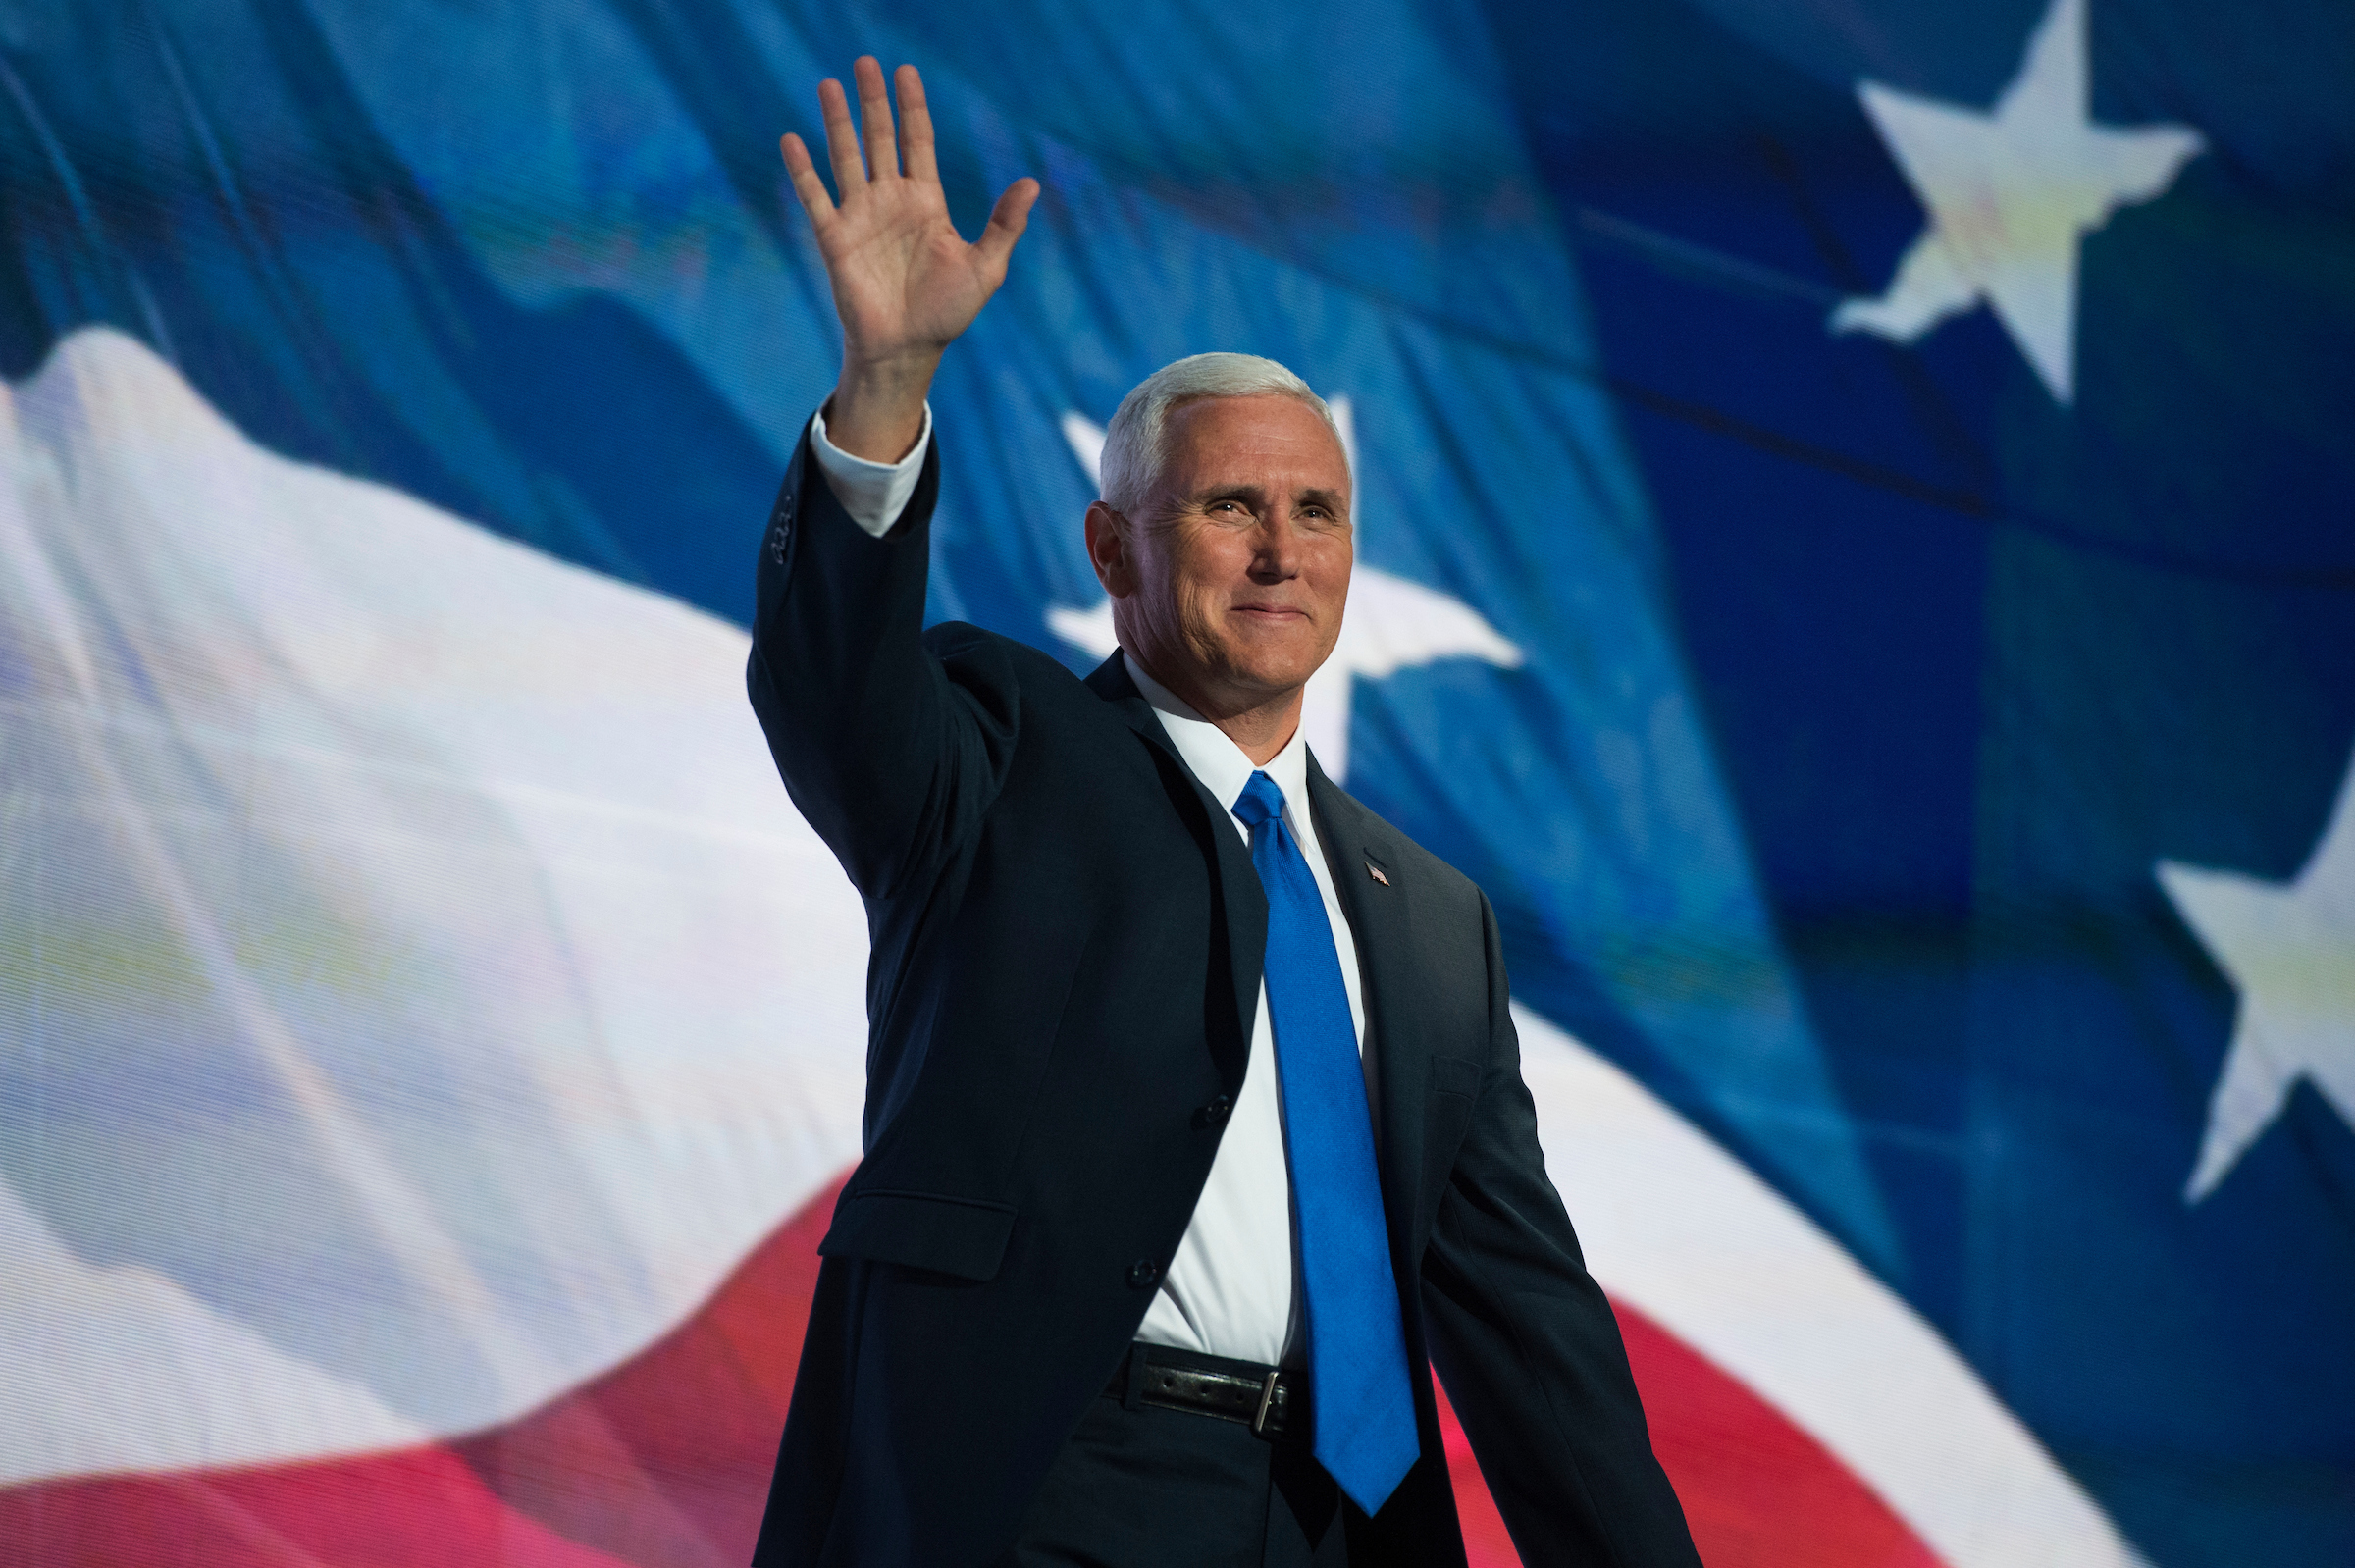 Indiana Gov. Mike Pence, running mate of Republican presidential candidate Donald Trump, addressed the GOP convention in Cleveland last week. (Tom Williams/CQ Roll Call)